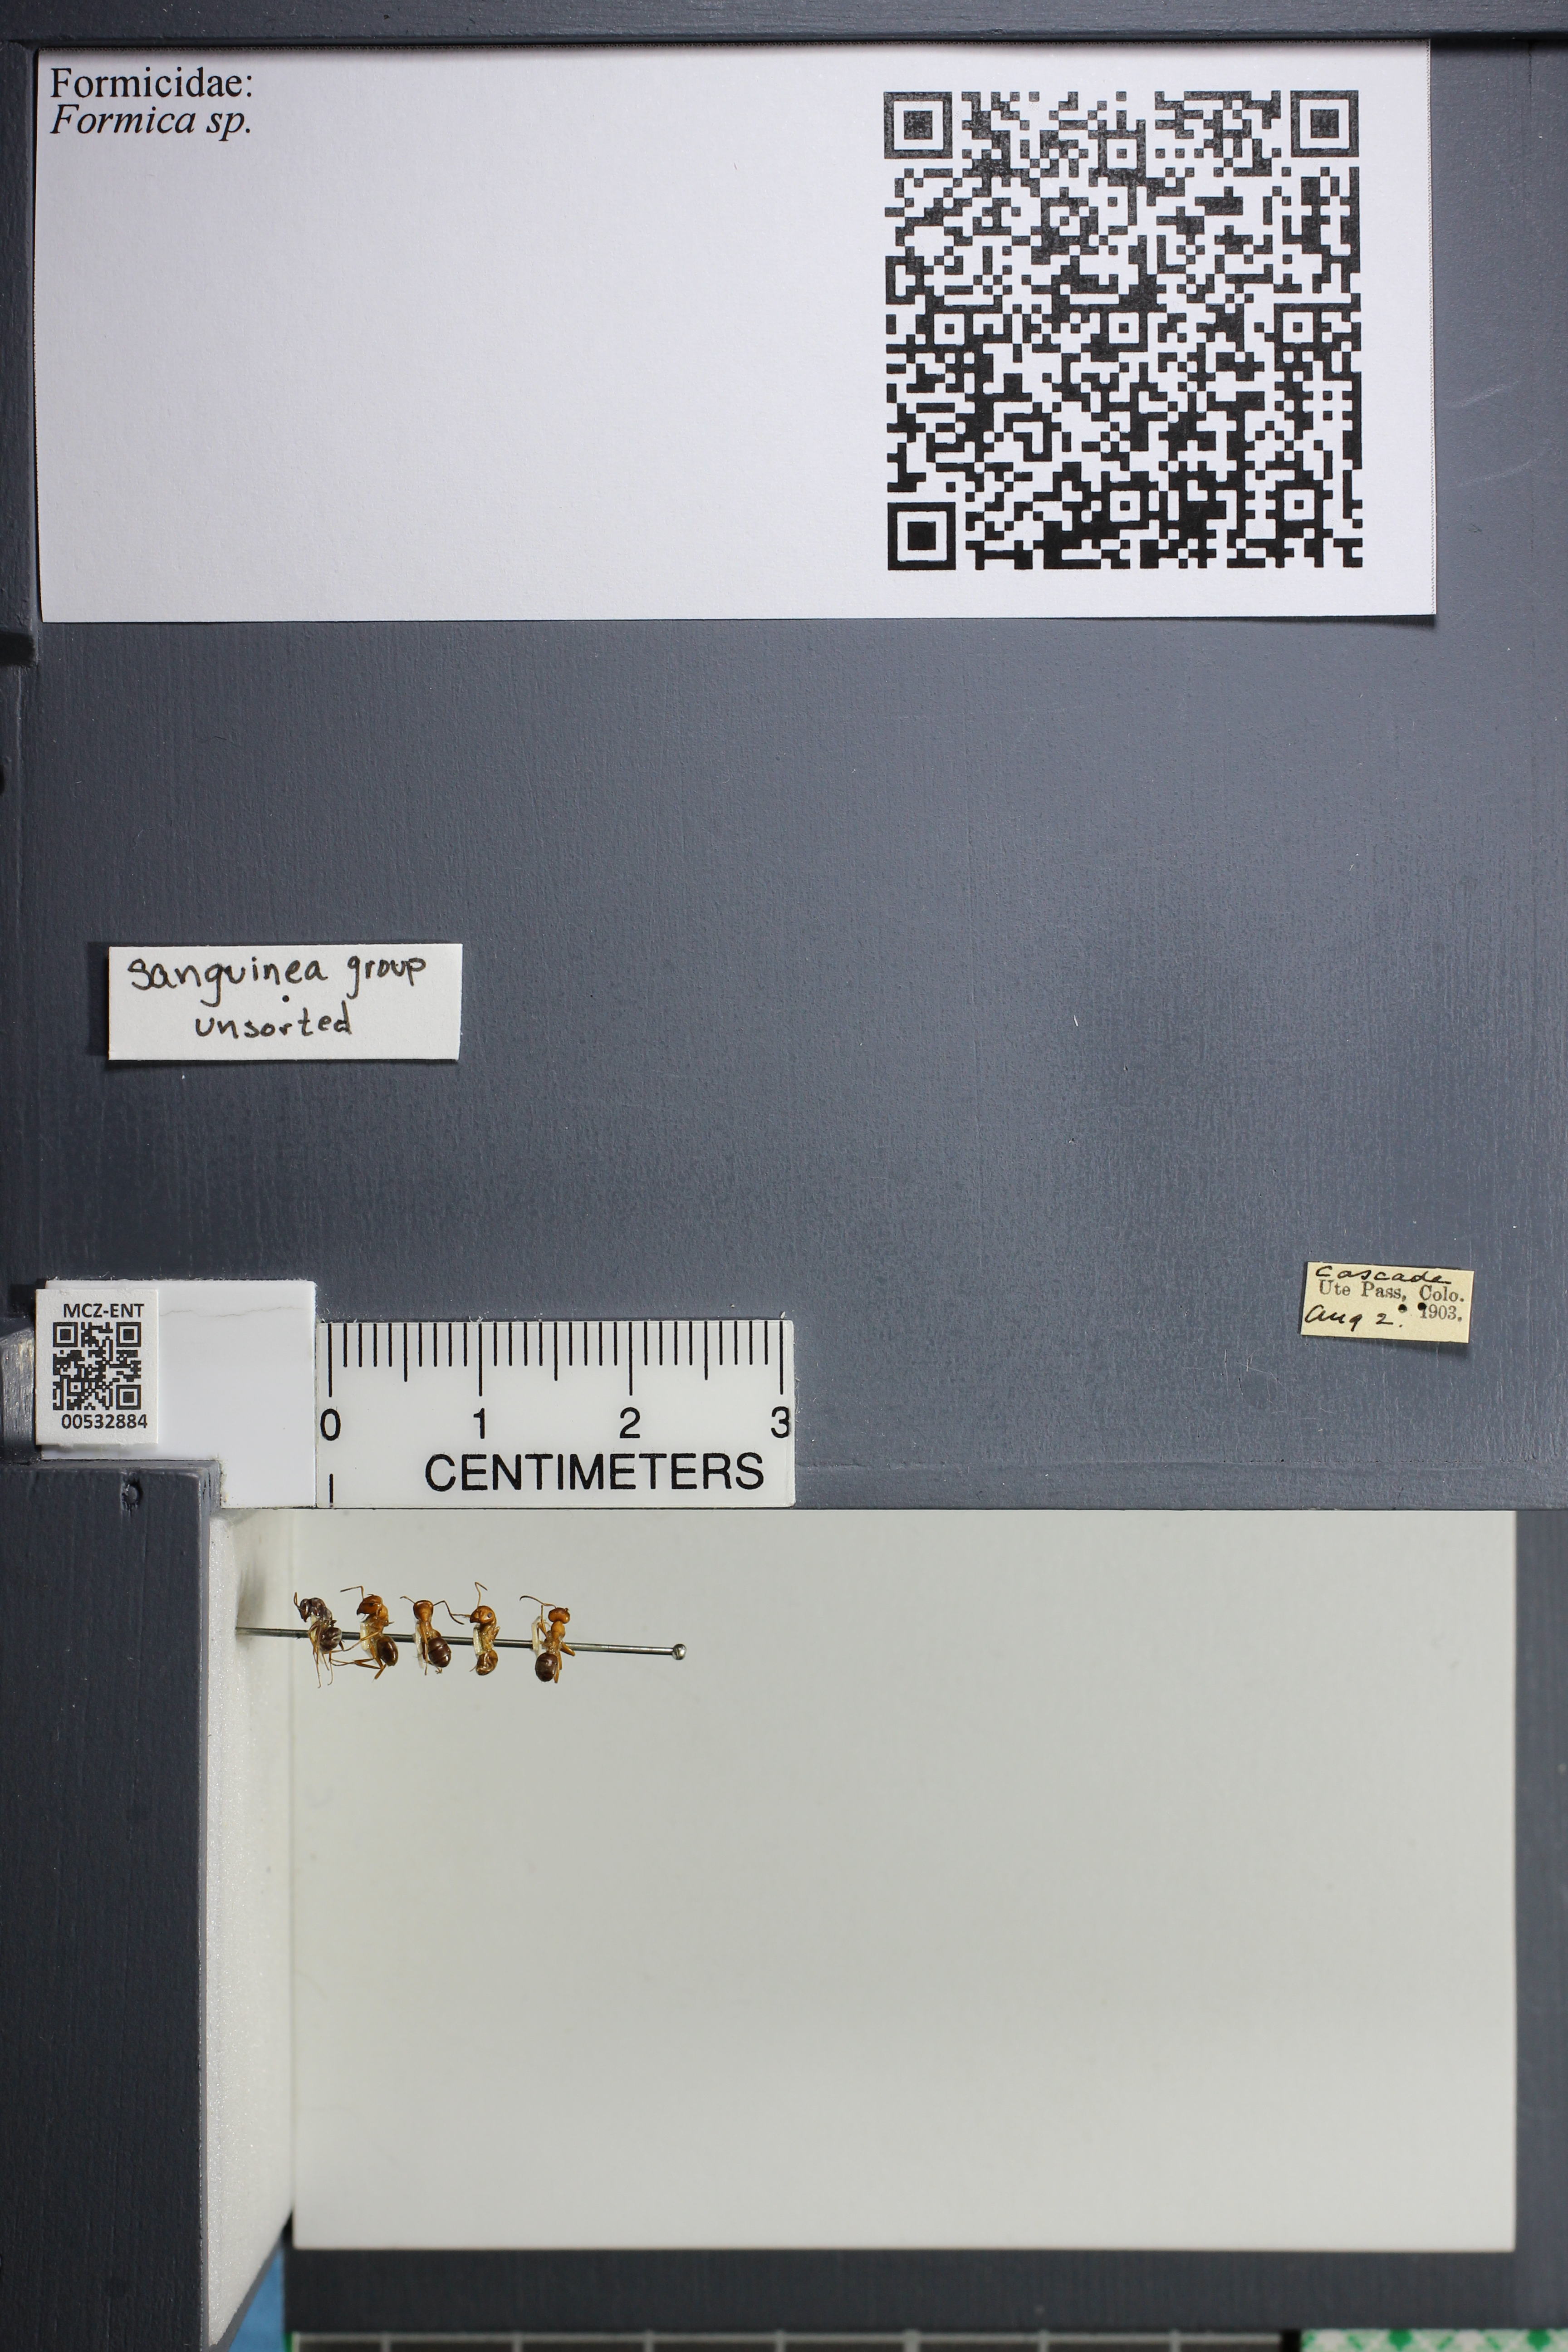 Media of type image, MCZ:Ent:532884 Identified as Formica sp..